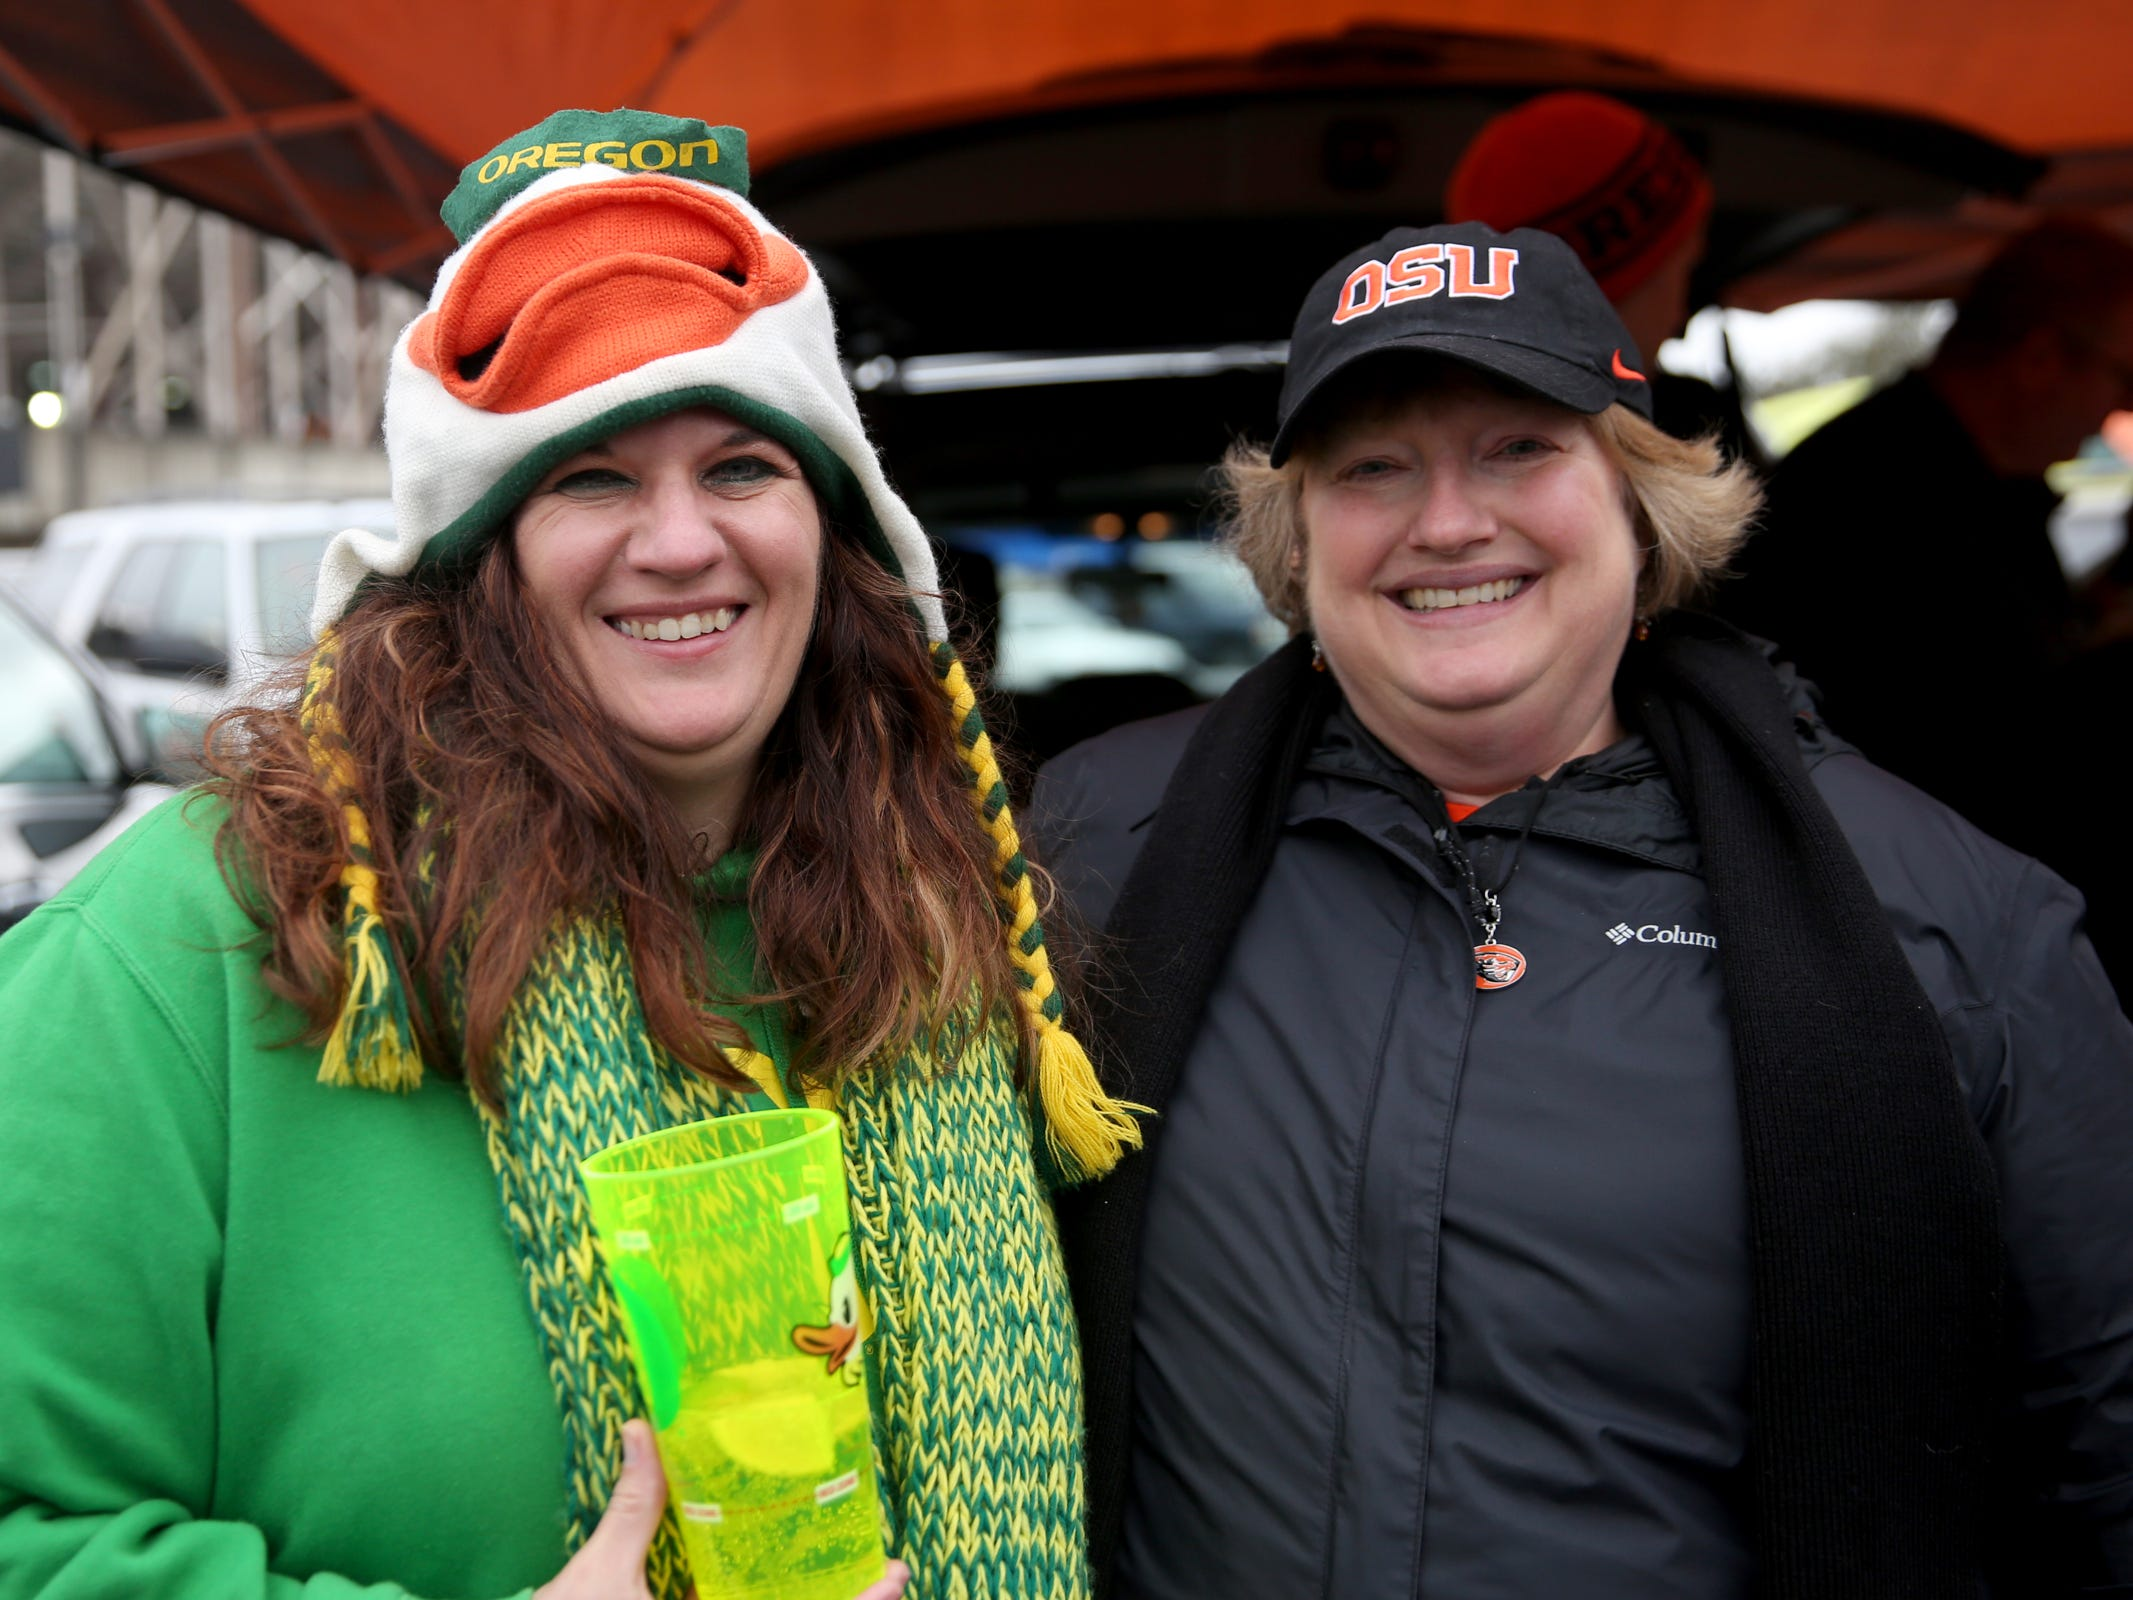 Sisters Anne Bruner, left, of Mt. Angel, and Sue Weber, of Tigard, root for different teams before the start of the Oregon vs. Oregon State Civil war football game at Oregon State University in Corvallis on Friday, Nov. 23, 2018.